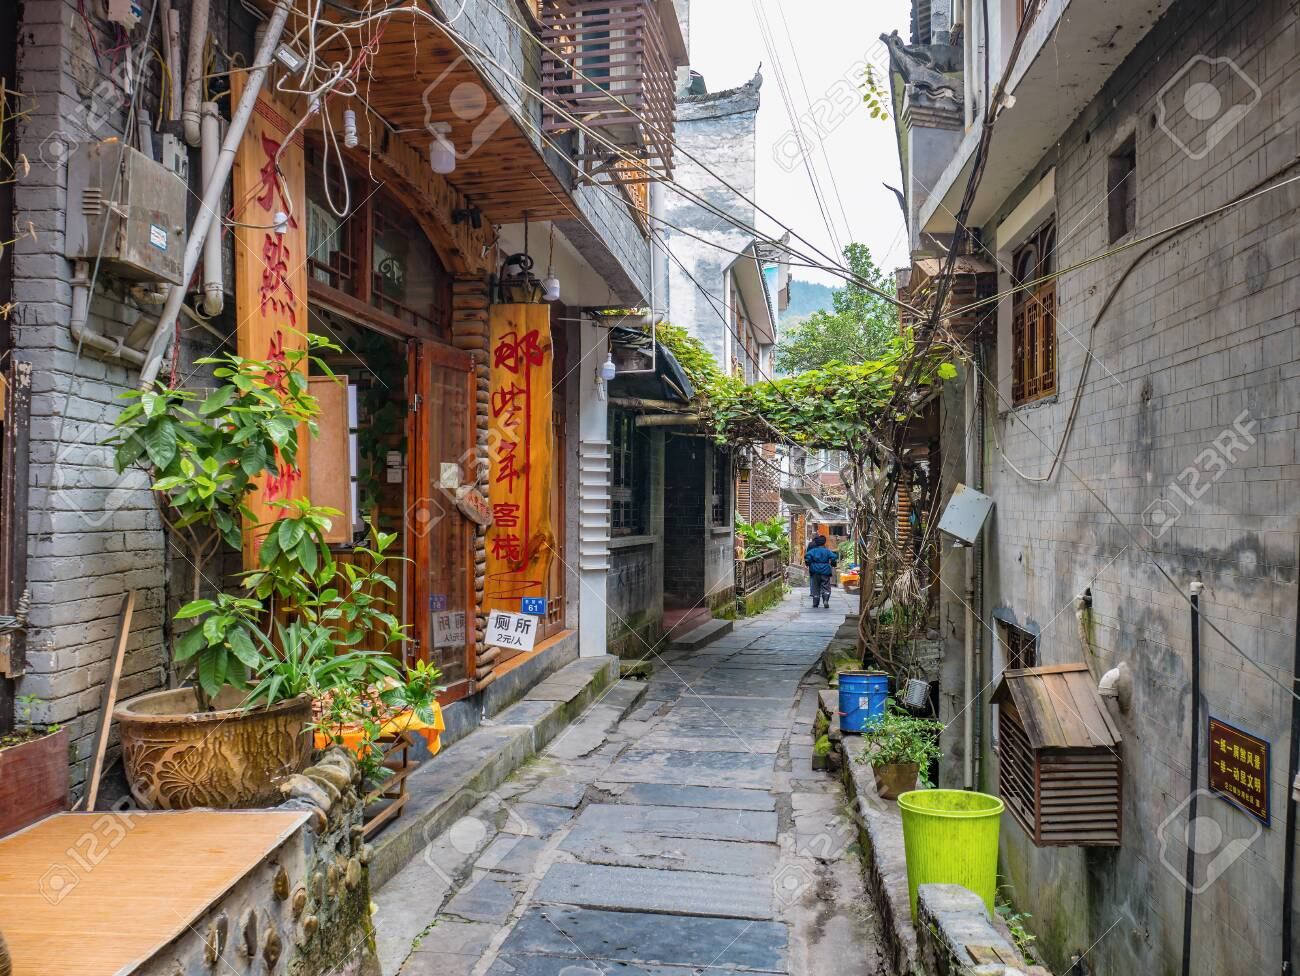 fenghuang,Hunan/China-16 October 2018:Tourist walking in alley building district of Fenghuang ancient town.phoenix ancient town or Fenghuang County is a county of Hunan Province, China - 144639135